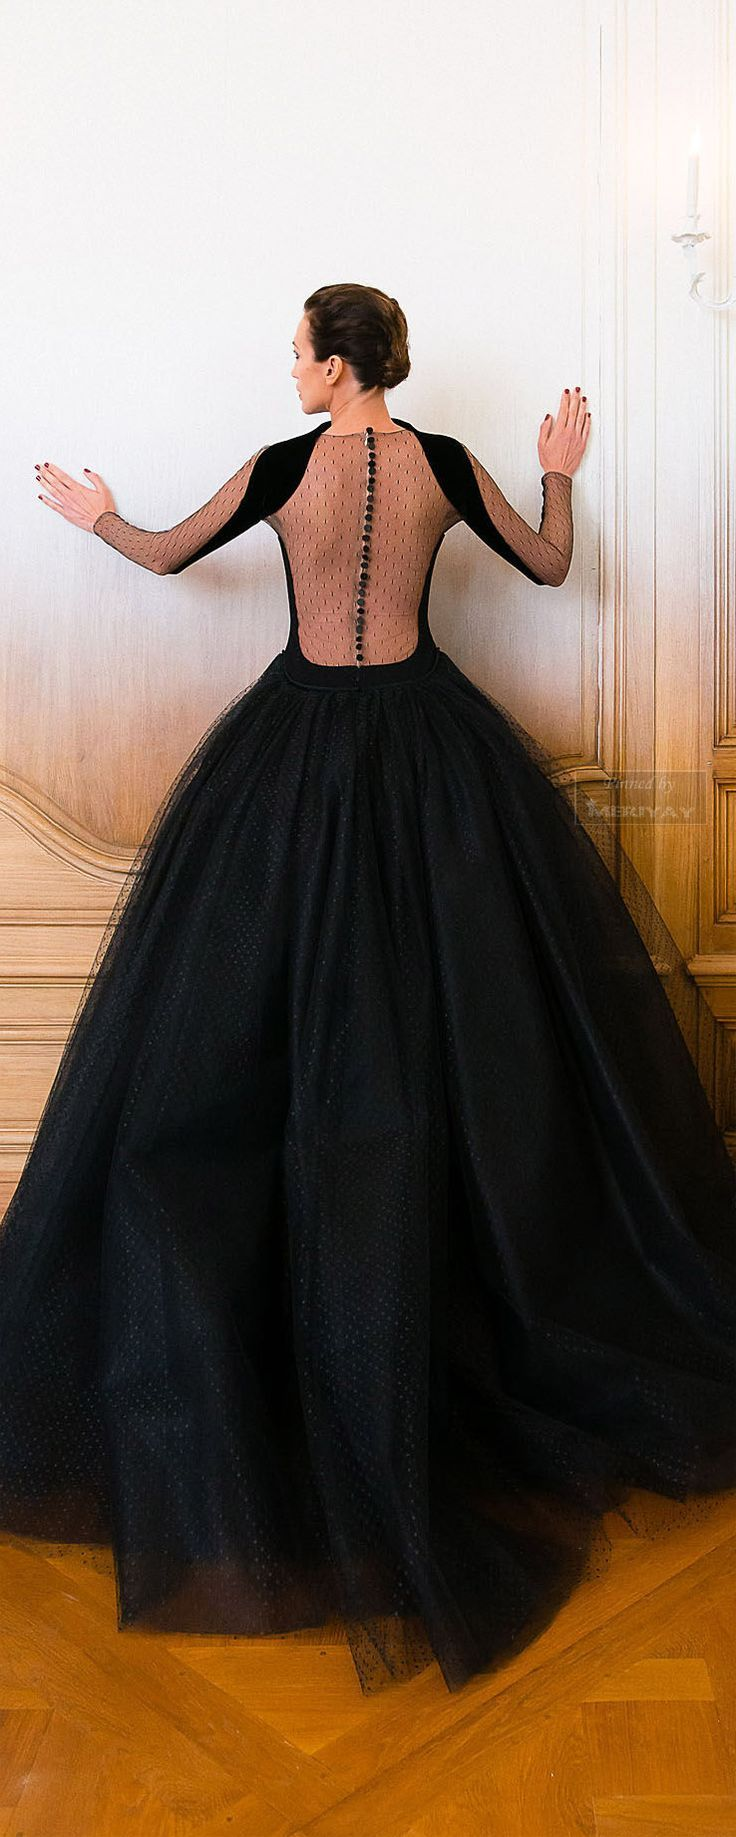 Not vintage, but ab fab stunning! Black dress ballgown backless tulle sheer sleeves Stéphane Rolland Fall 2014-2015